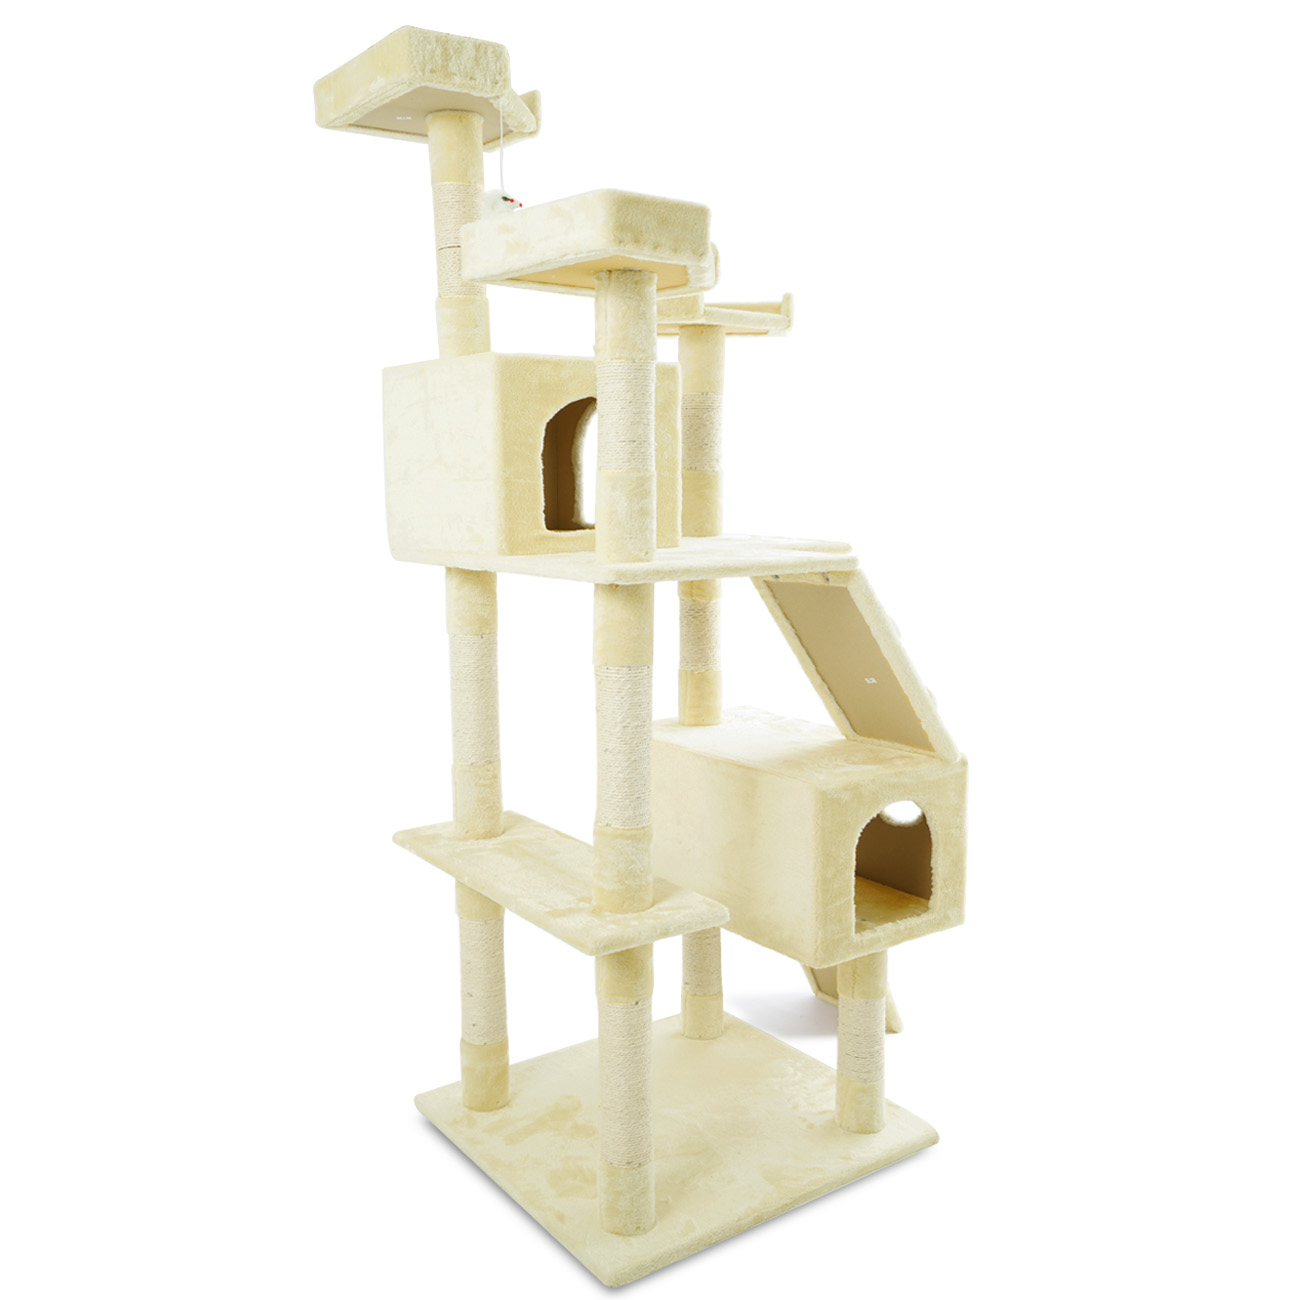 new 72 inch cat tree play house tower condo scratch post. Black Bedroom Furniture Sets. Home Design Ideas